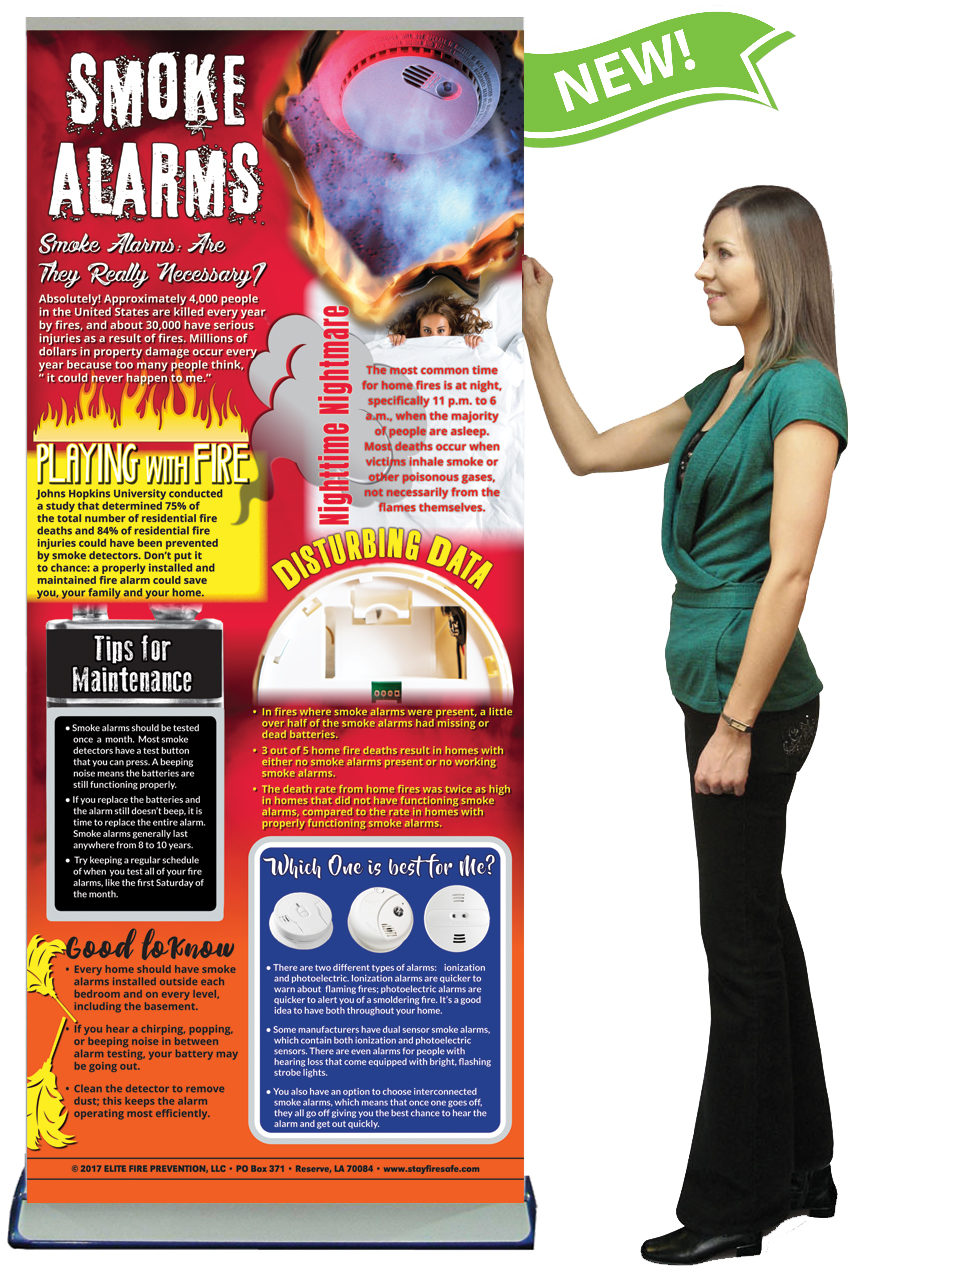 BAN-FMSS-02-Smoke-Alarms-BANNER-NEW-FLAG-with-LADY